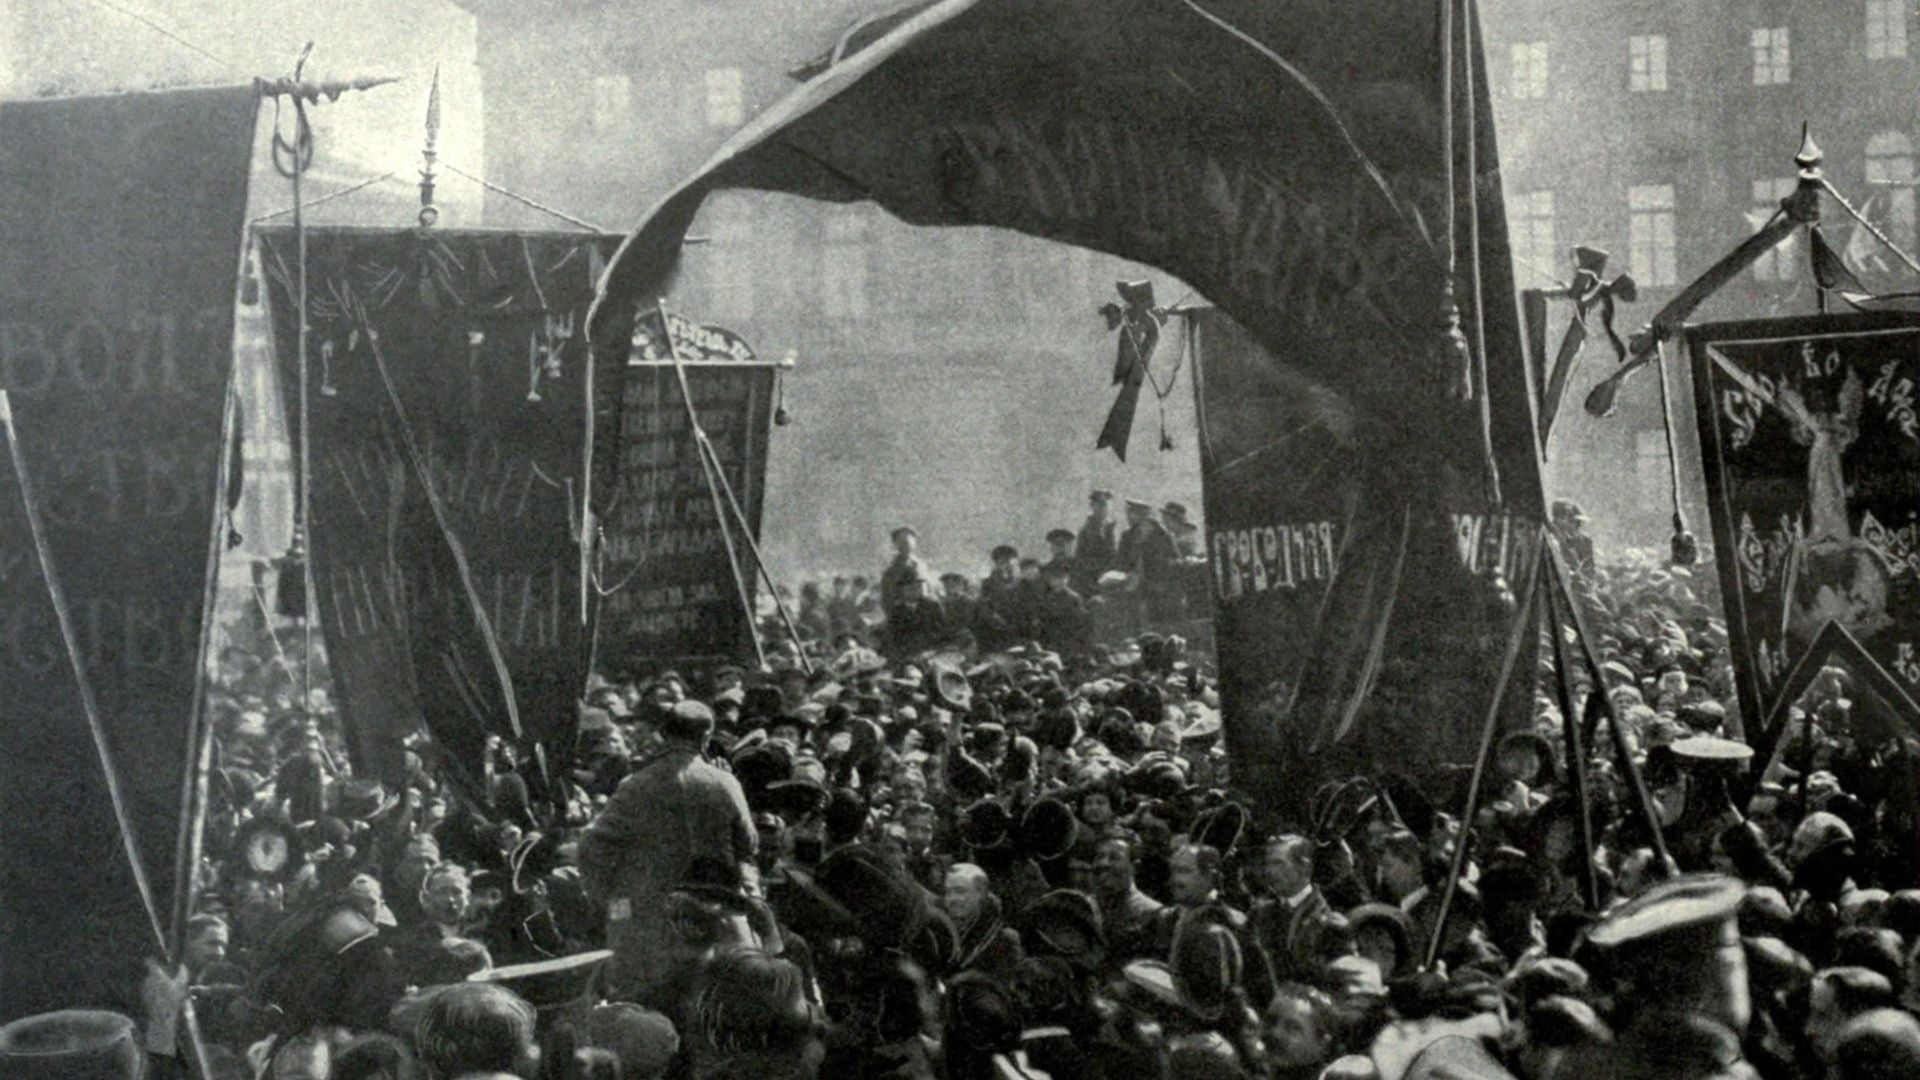 Bolshevik banners and speakers in St. Petersberg during the Russian Revolution. 1917.